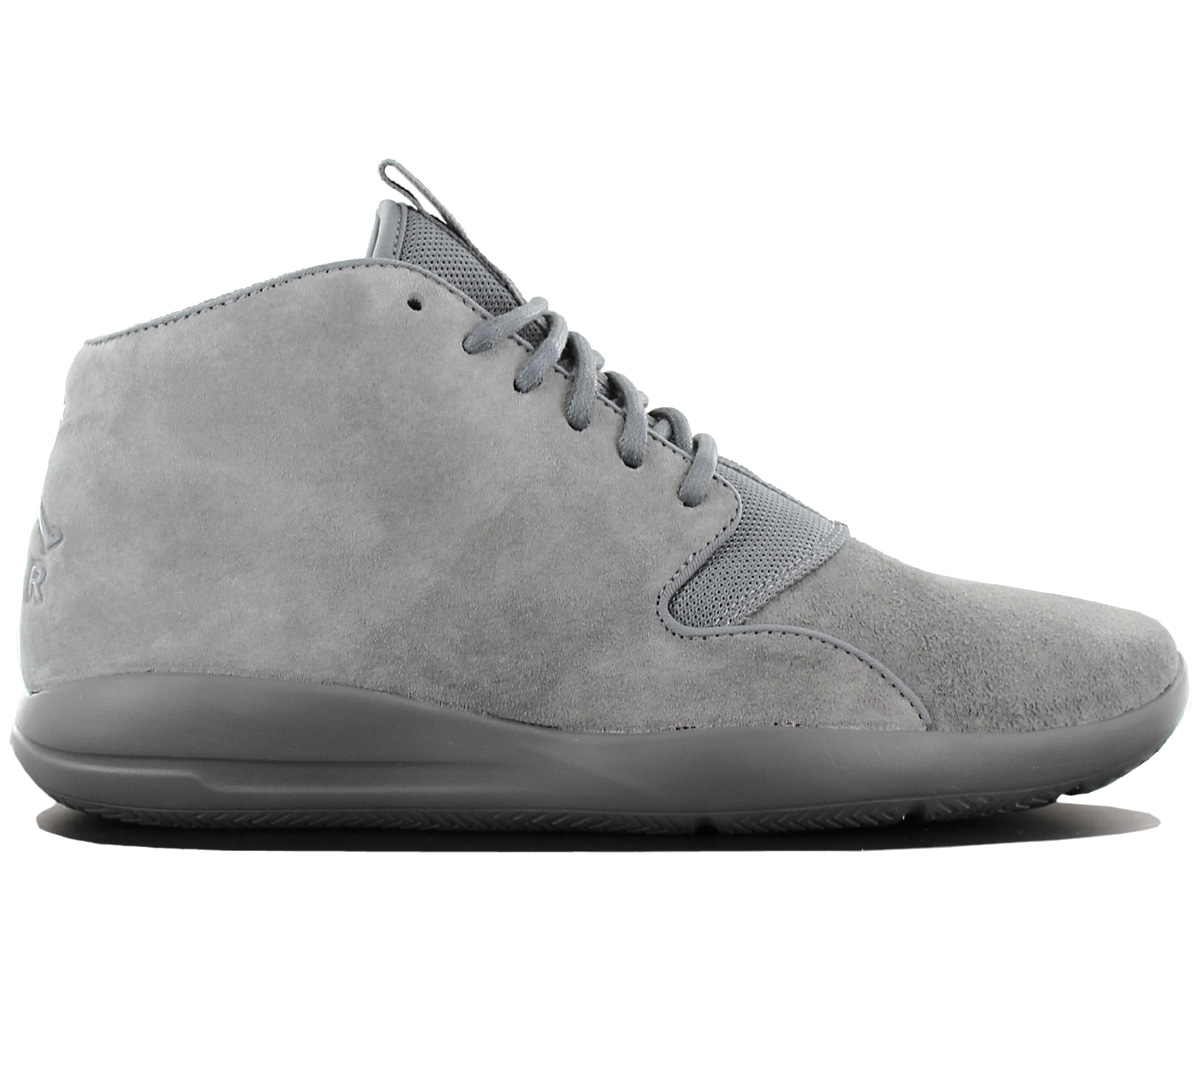 da84ffac40d8ef Nike Air Jordan Eclipse Chukka Leather Men s Sneakers Shoe Sneaker ...